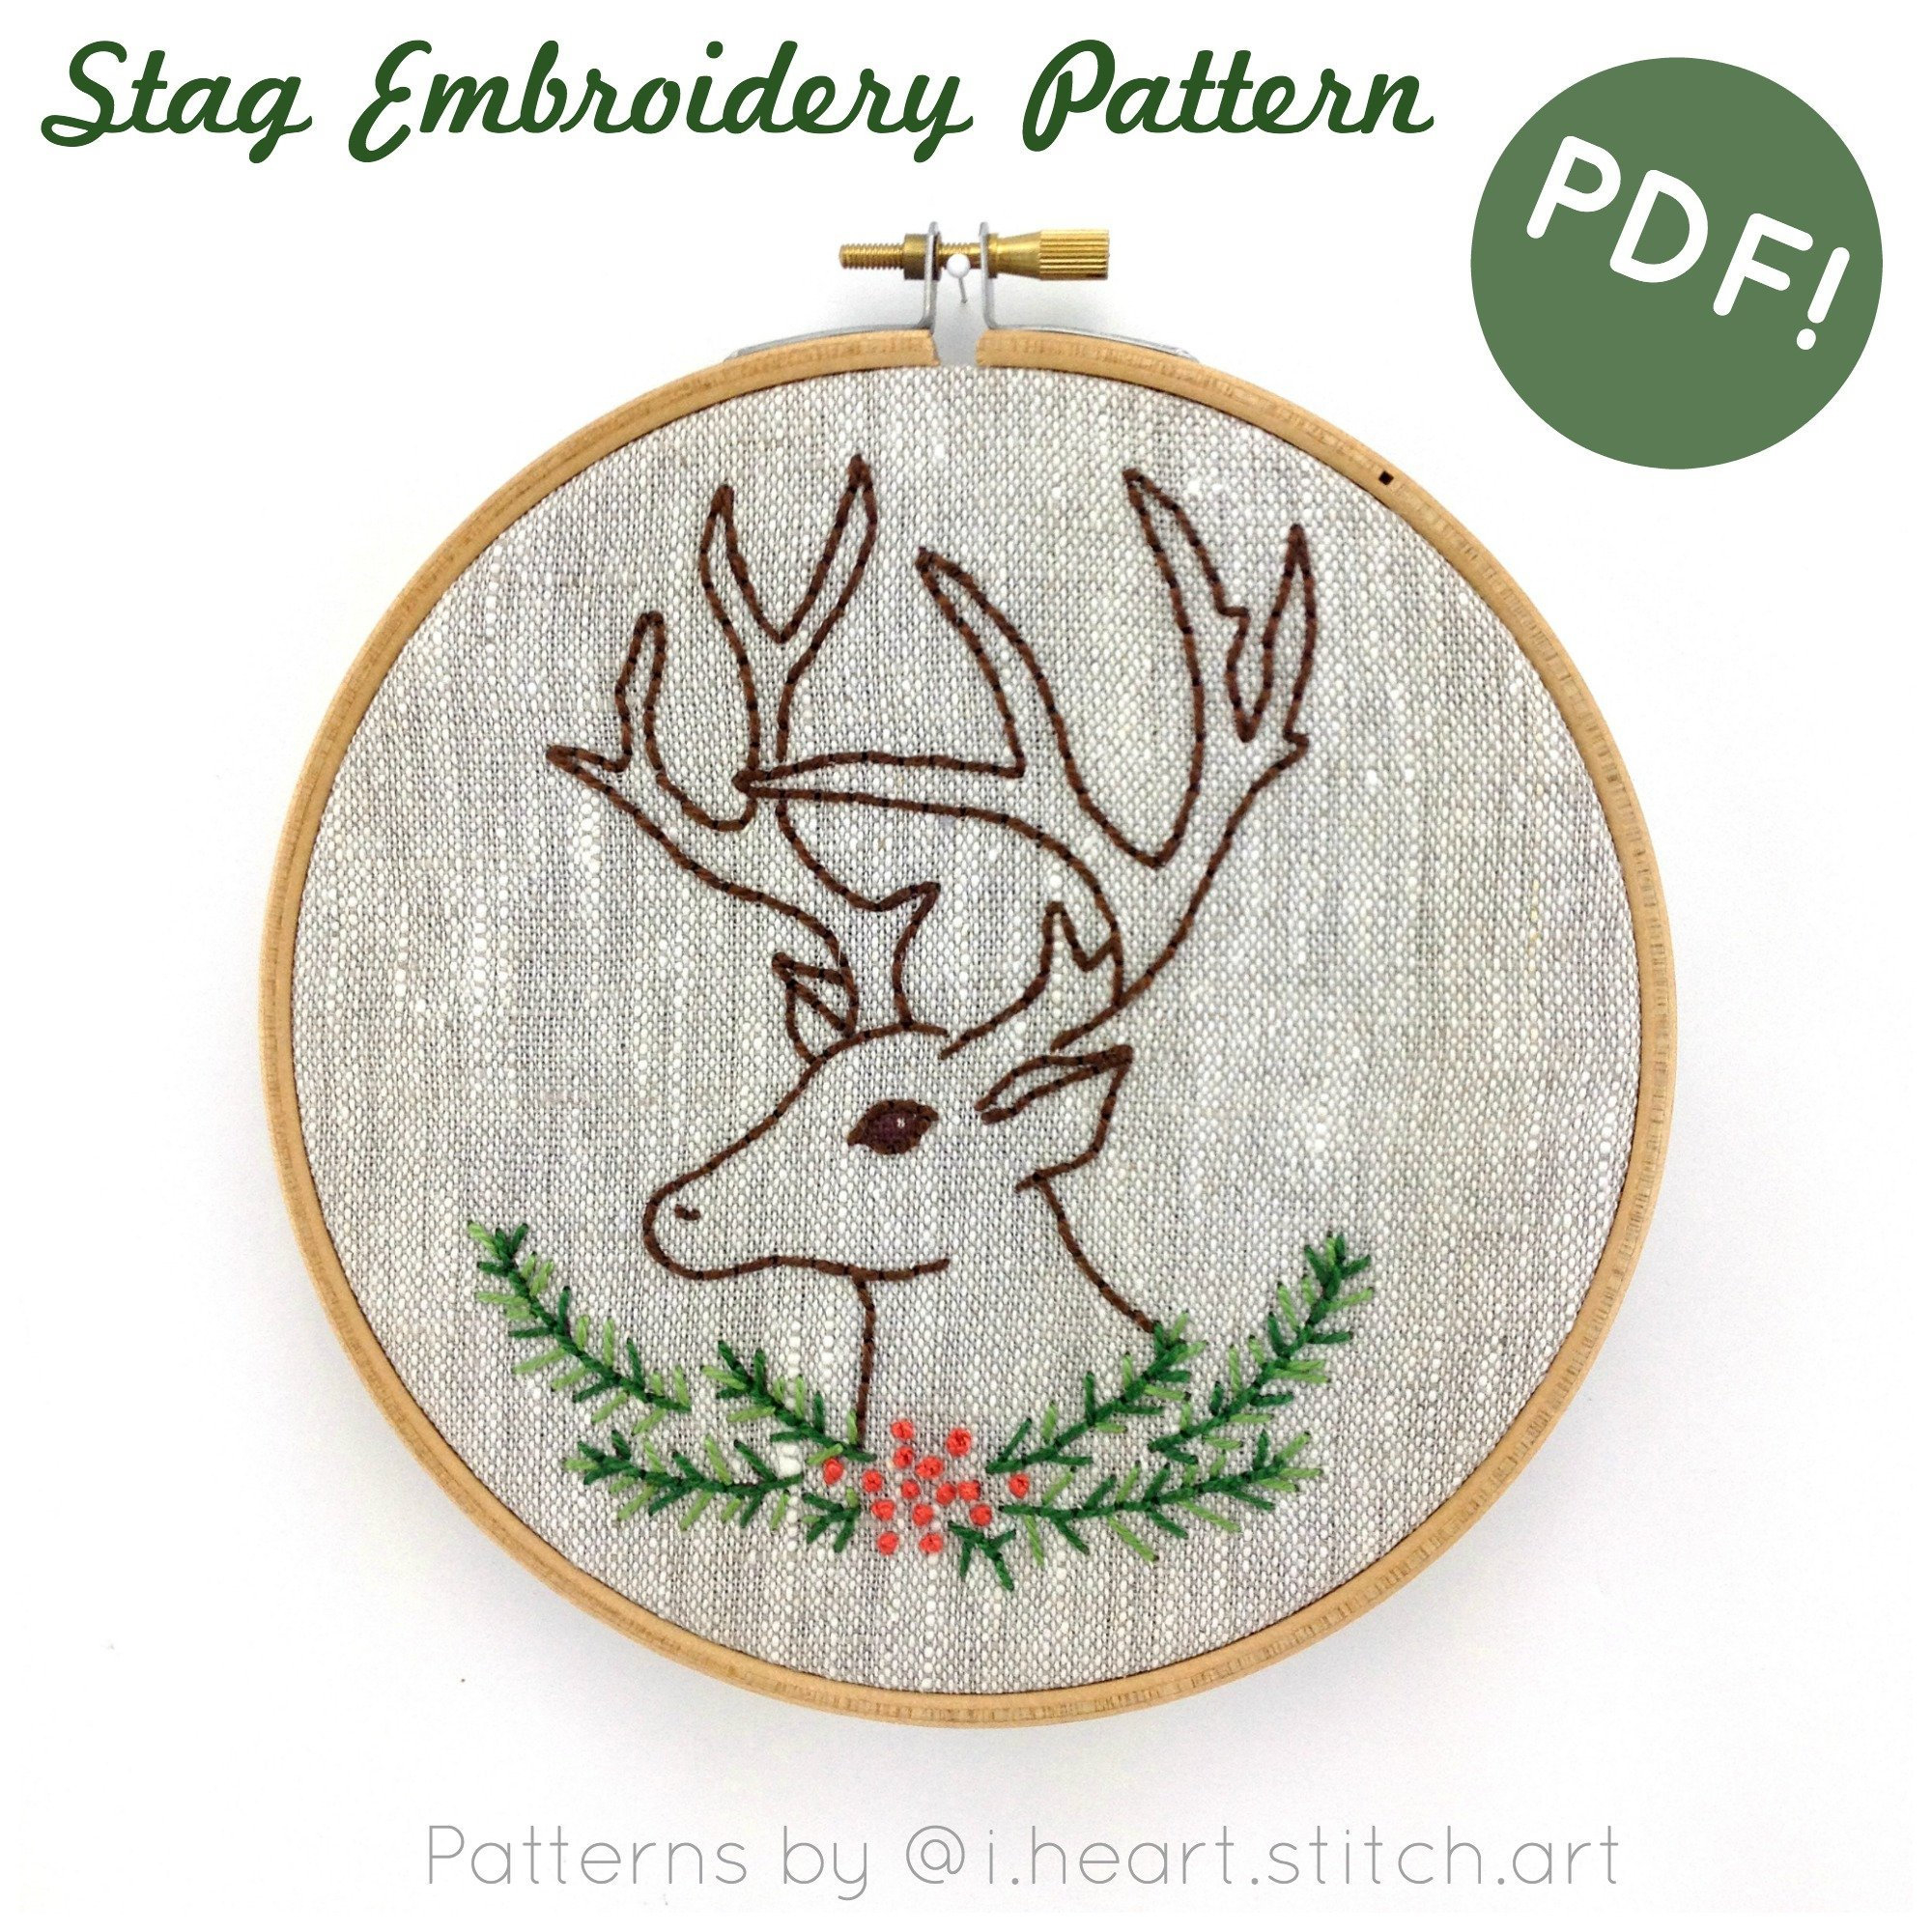 How To Make Your Own Embroidery Pattern Stag Embroidery Pattern Digital Download